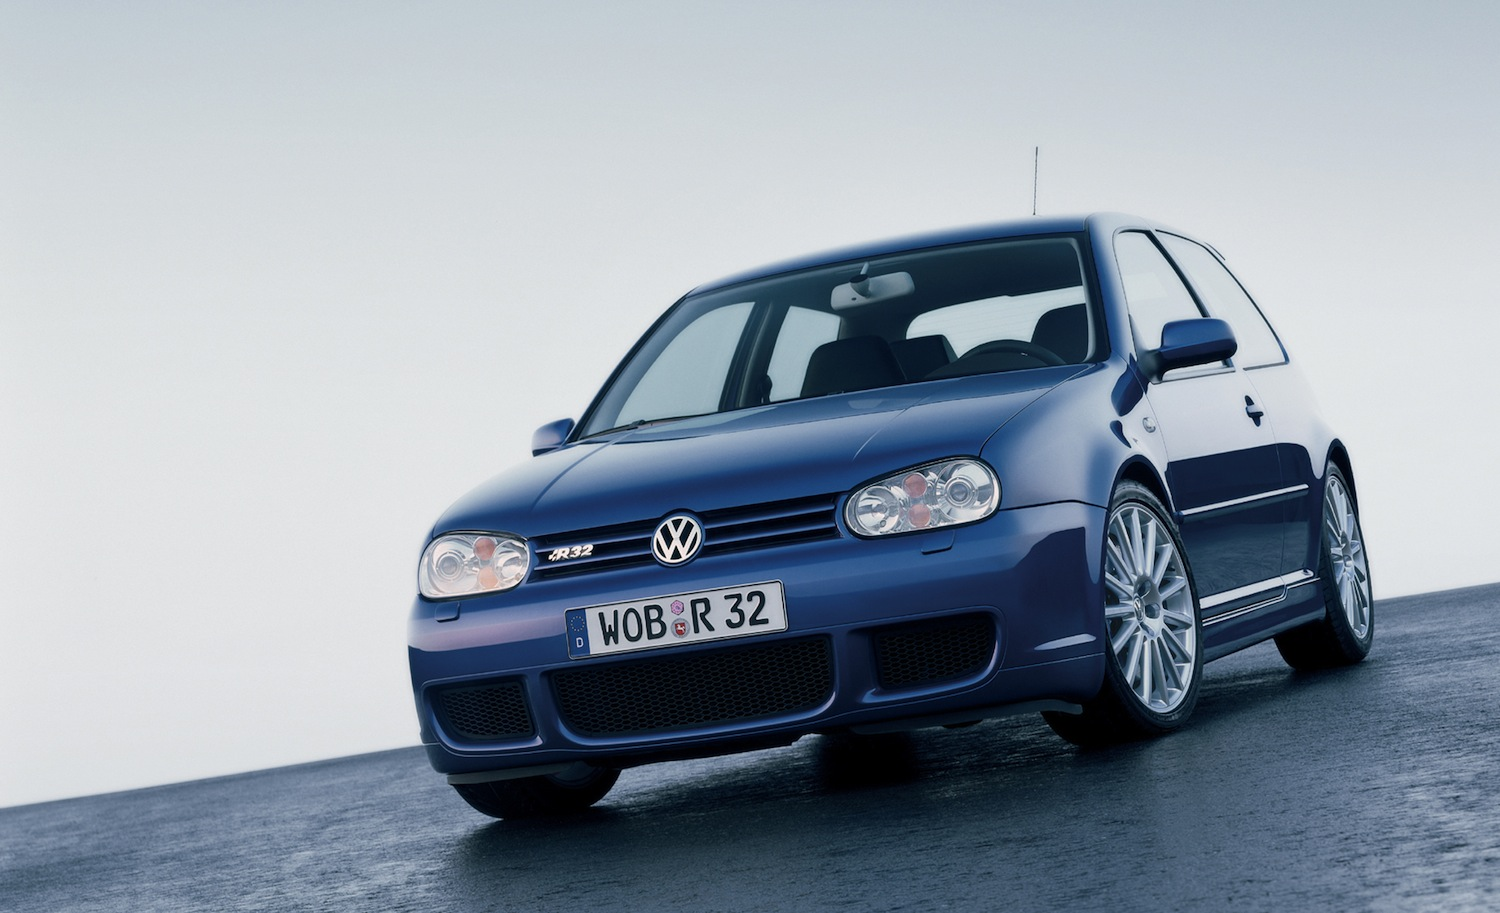 volkswagen-golf-4-r32-81